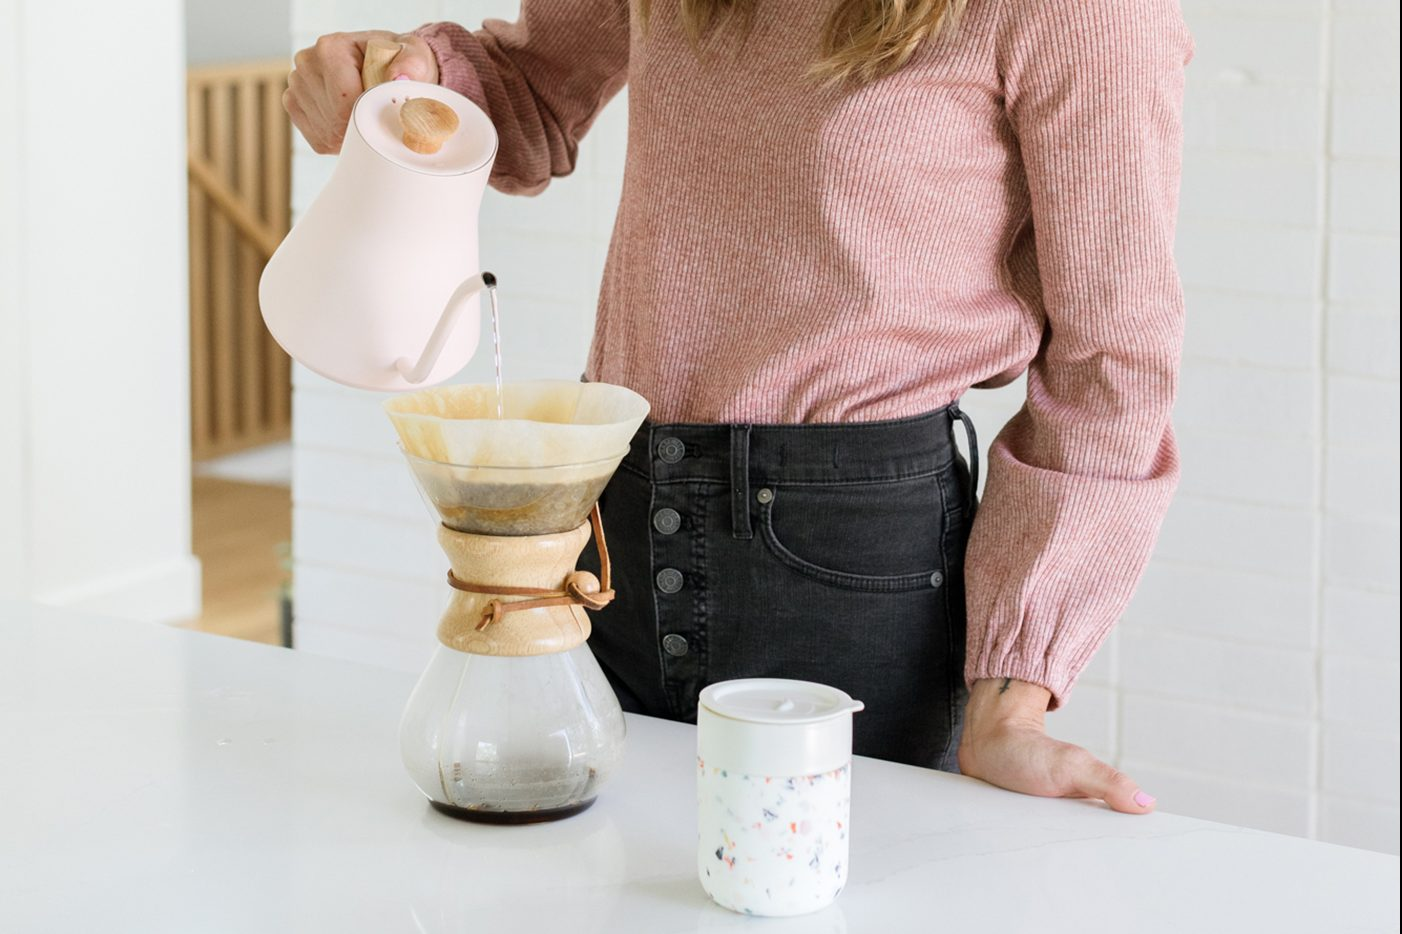 Wave Coffee offers a to-your-door coffee-bean subscription service, stocking customers with high-quality brew without any hassle.